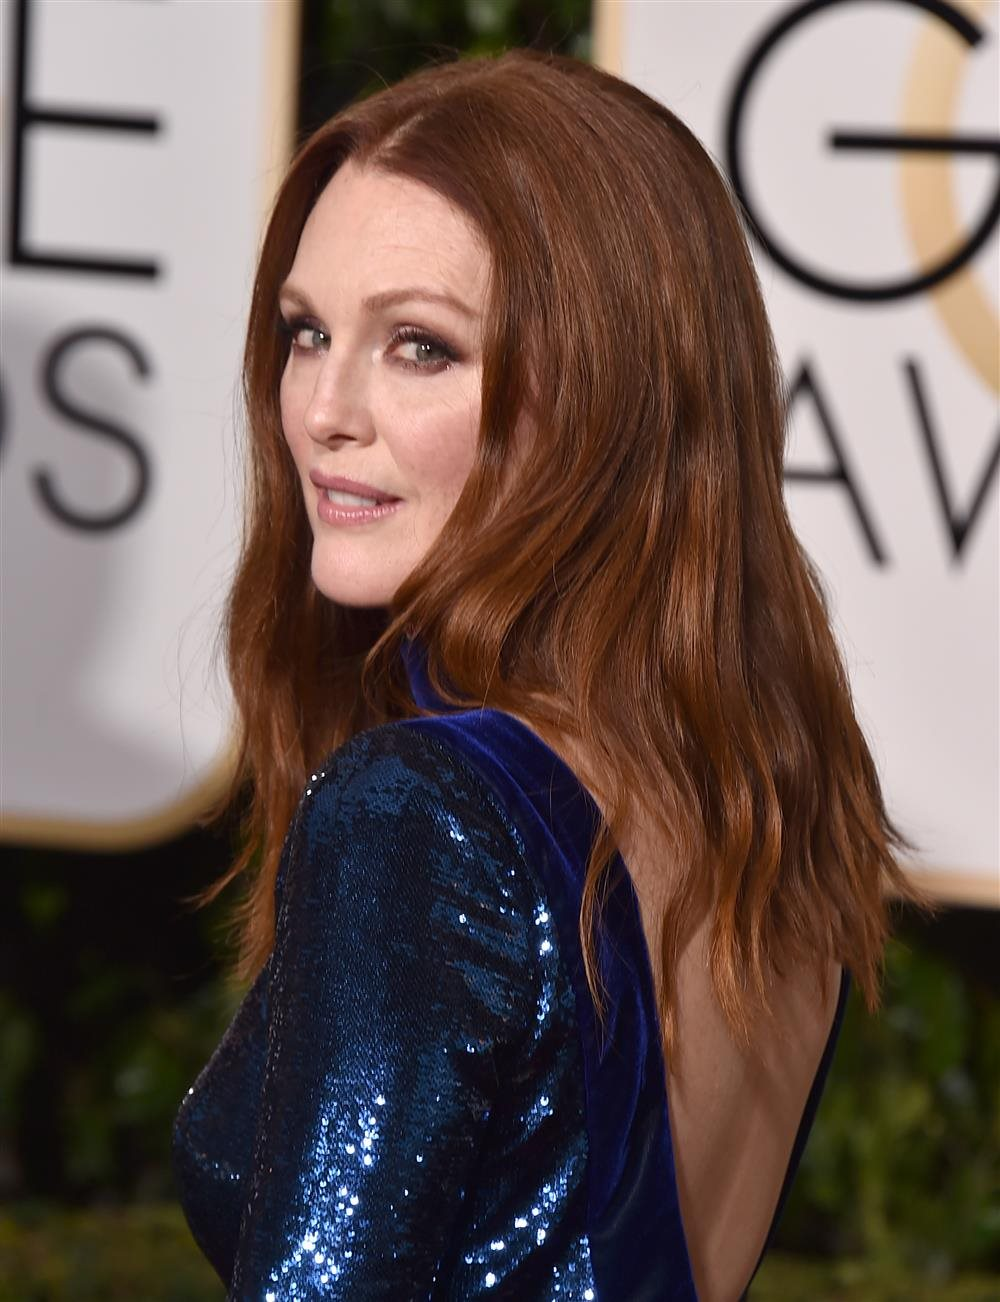 DL u298100 285. Julianne Moore